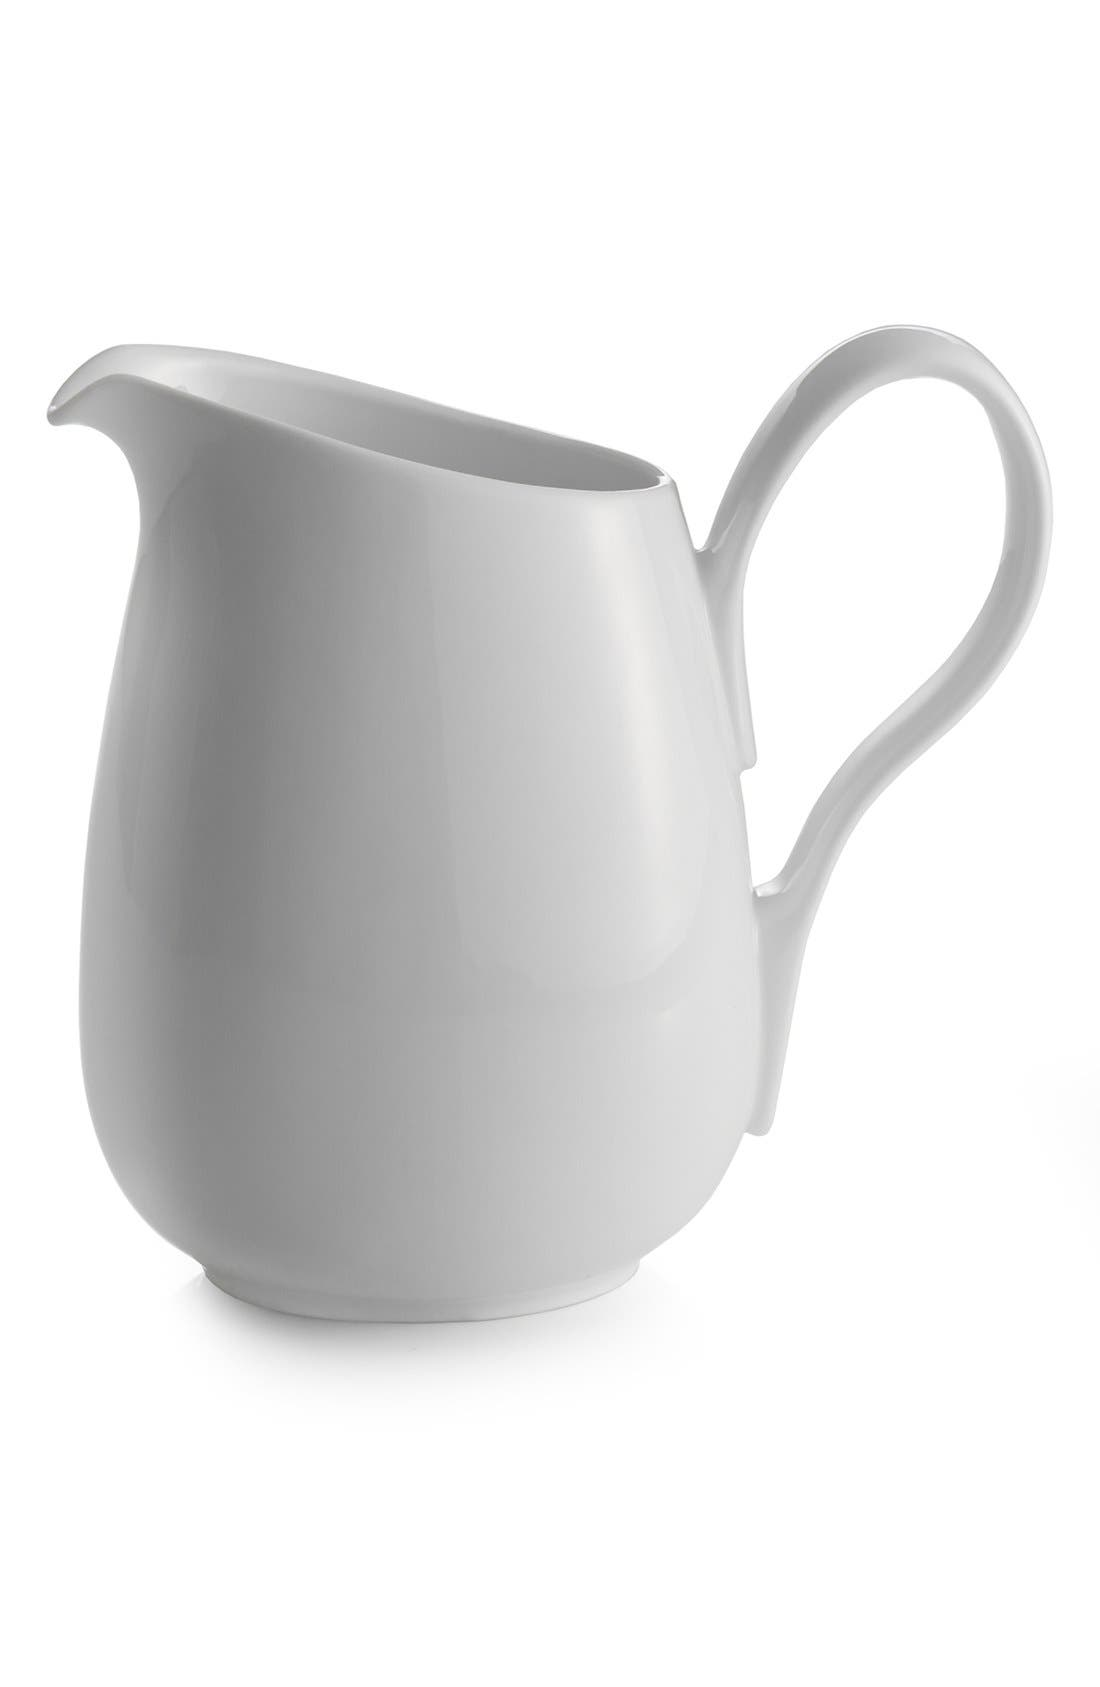 'The Skye Collection' Pitcher,                             Main thumbnail 1, color,                             100